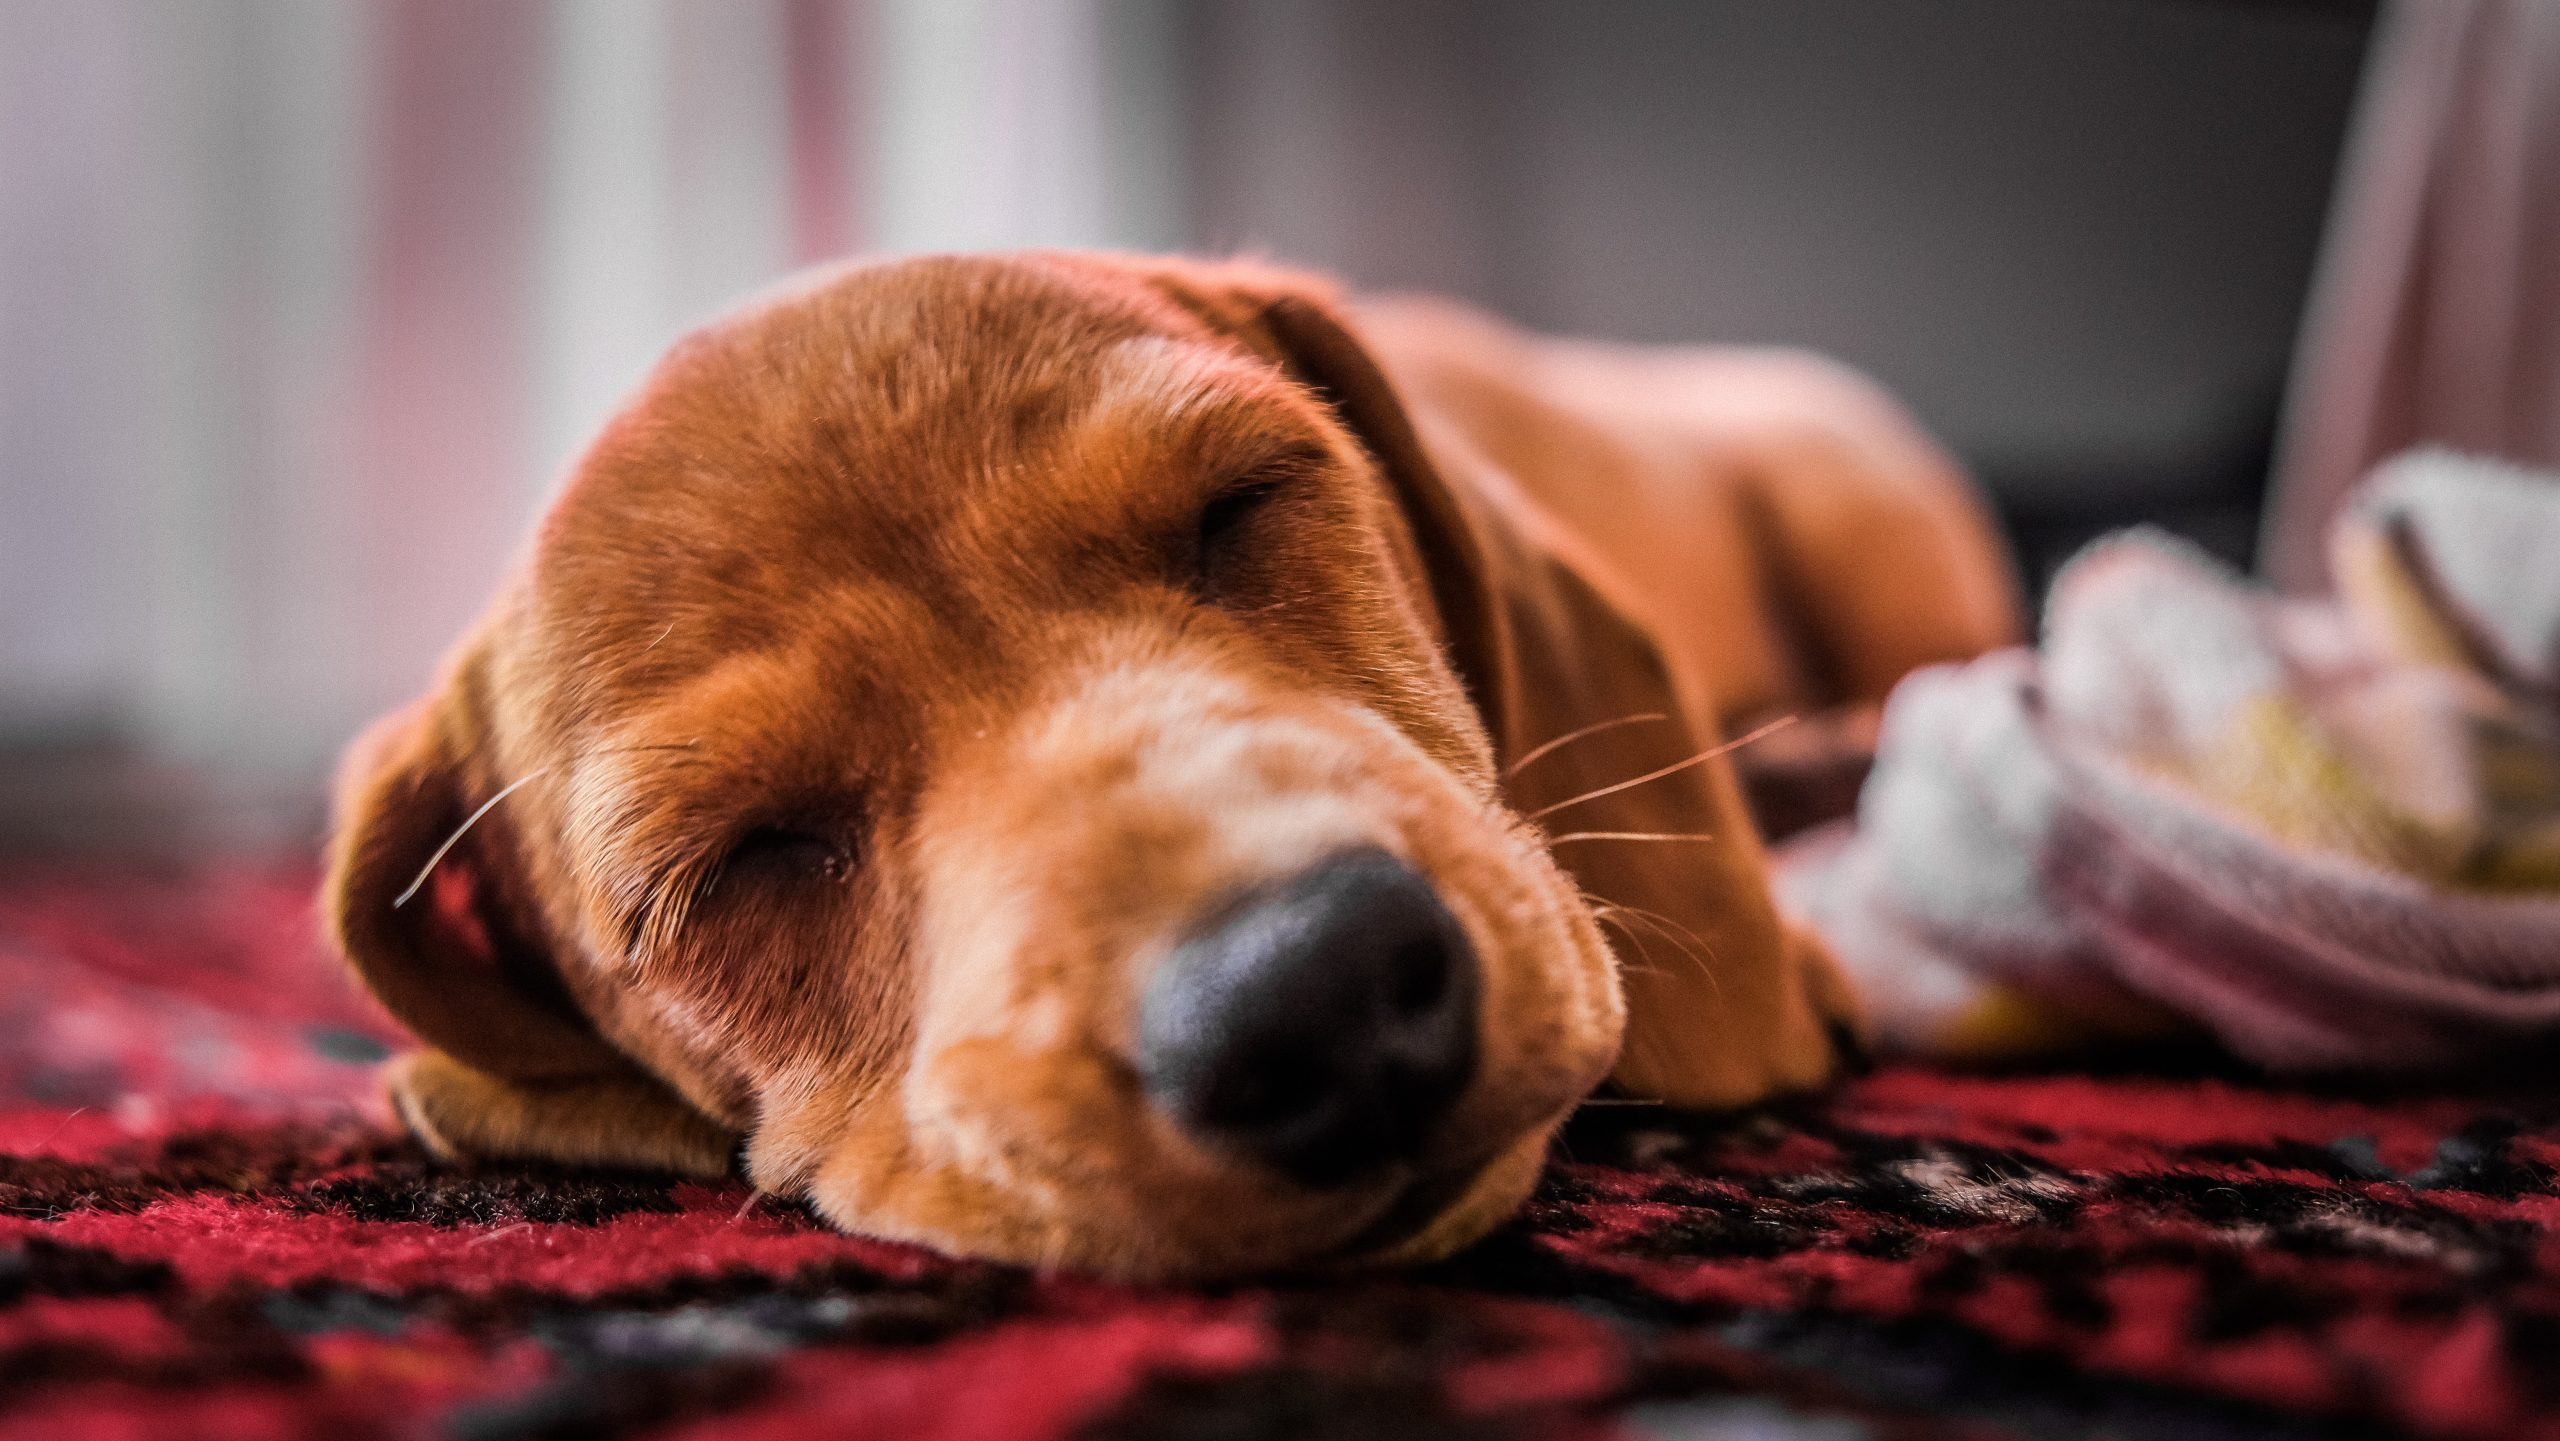 What Do Dog Sleeping Positions Mean?